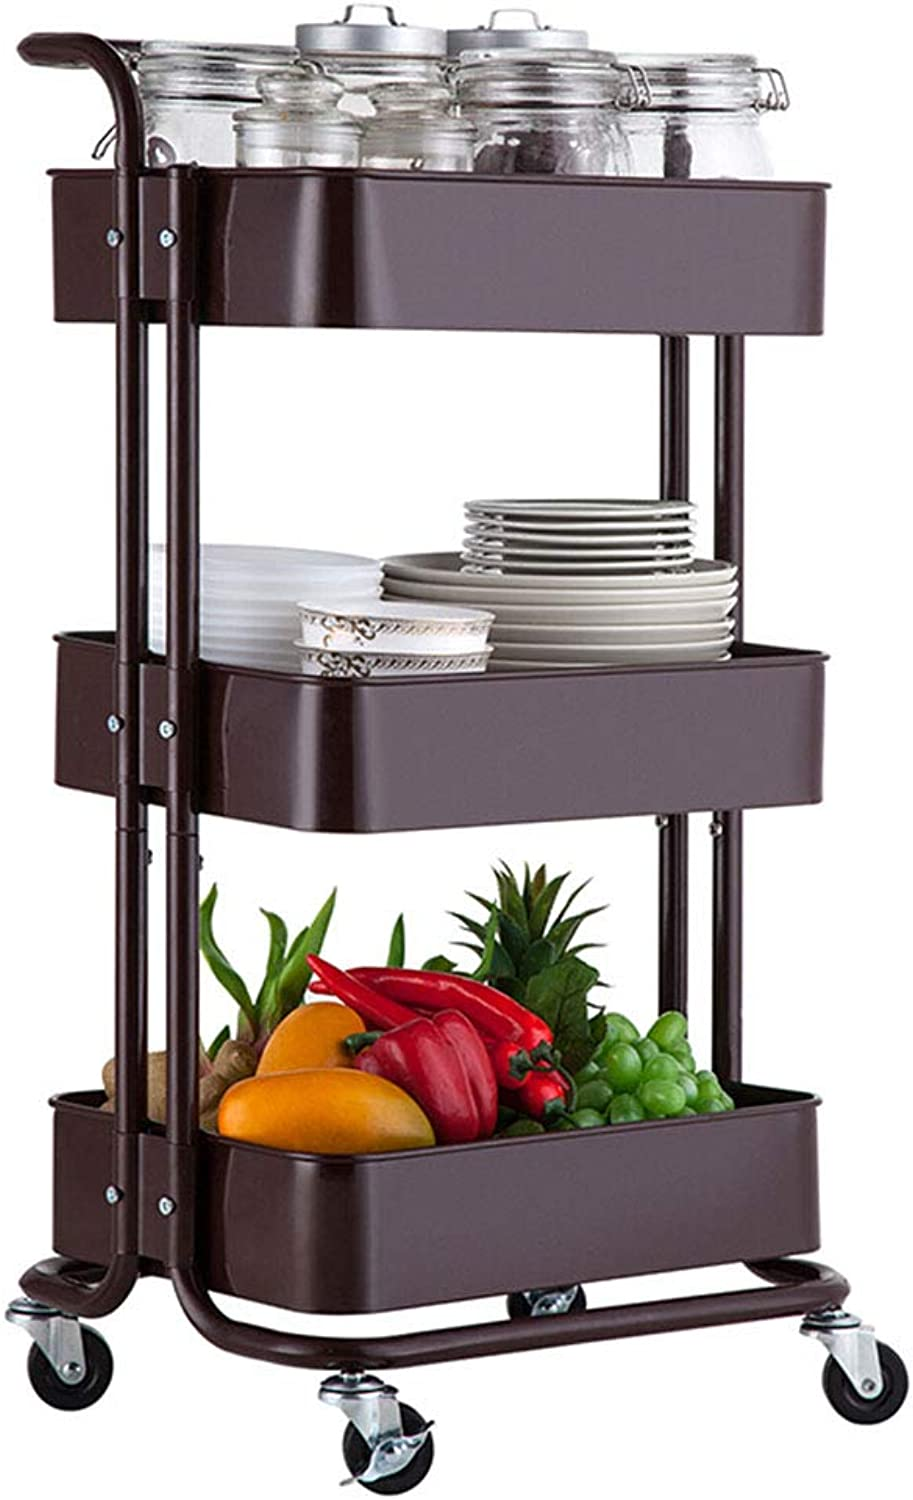 XLong-Home Kitchen Storage Trolley Cart with Storage Baskets and Wheels Fruit Vegetable Rack - Carbon Steel